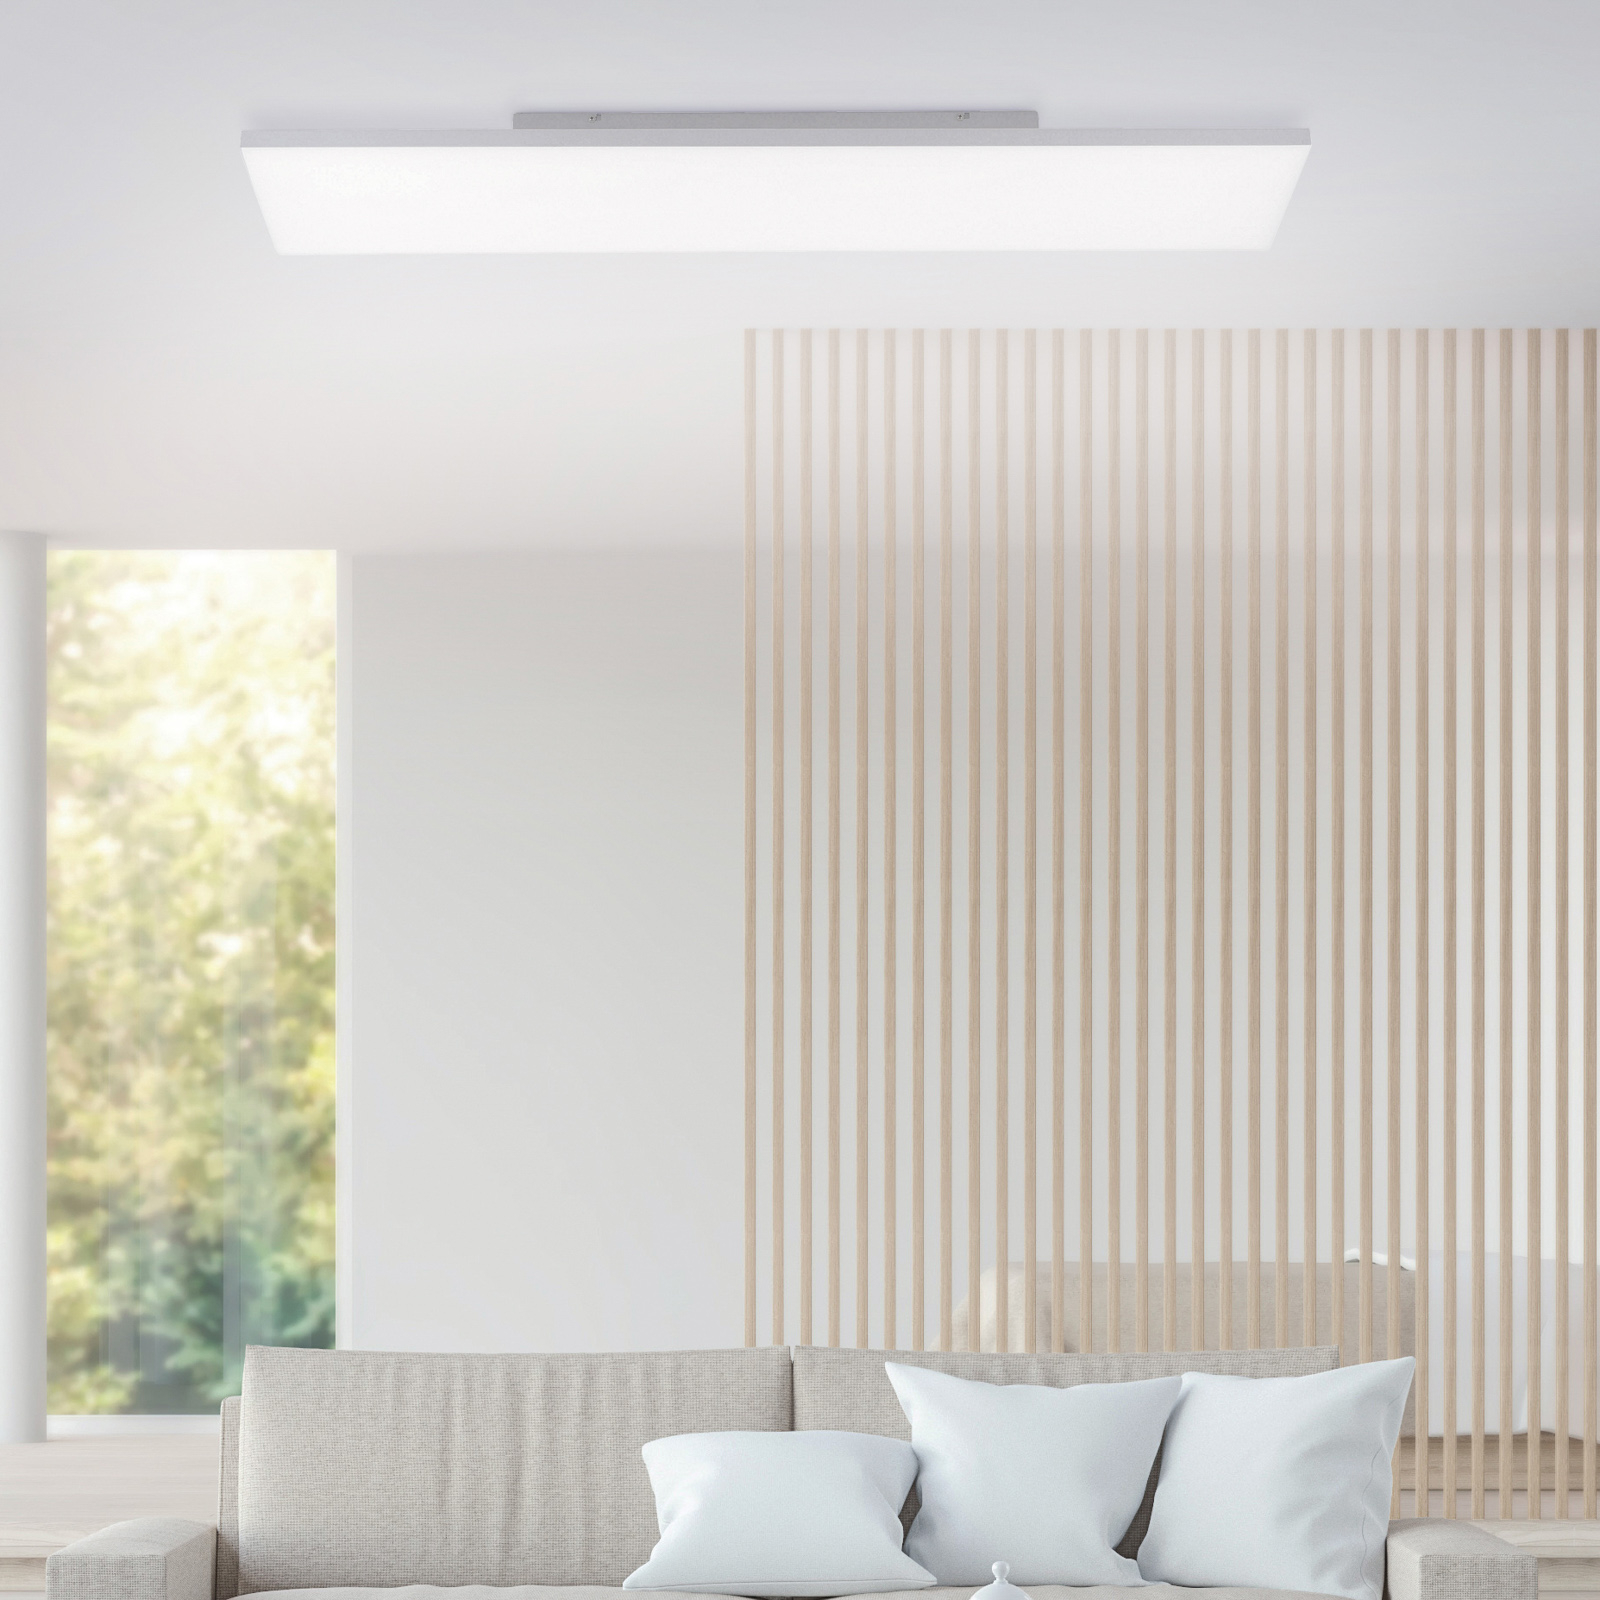 Canvas LED-taklampe, tunable white, 100 x 25 cm